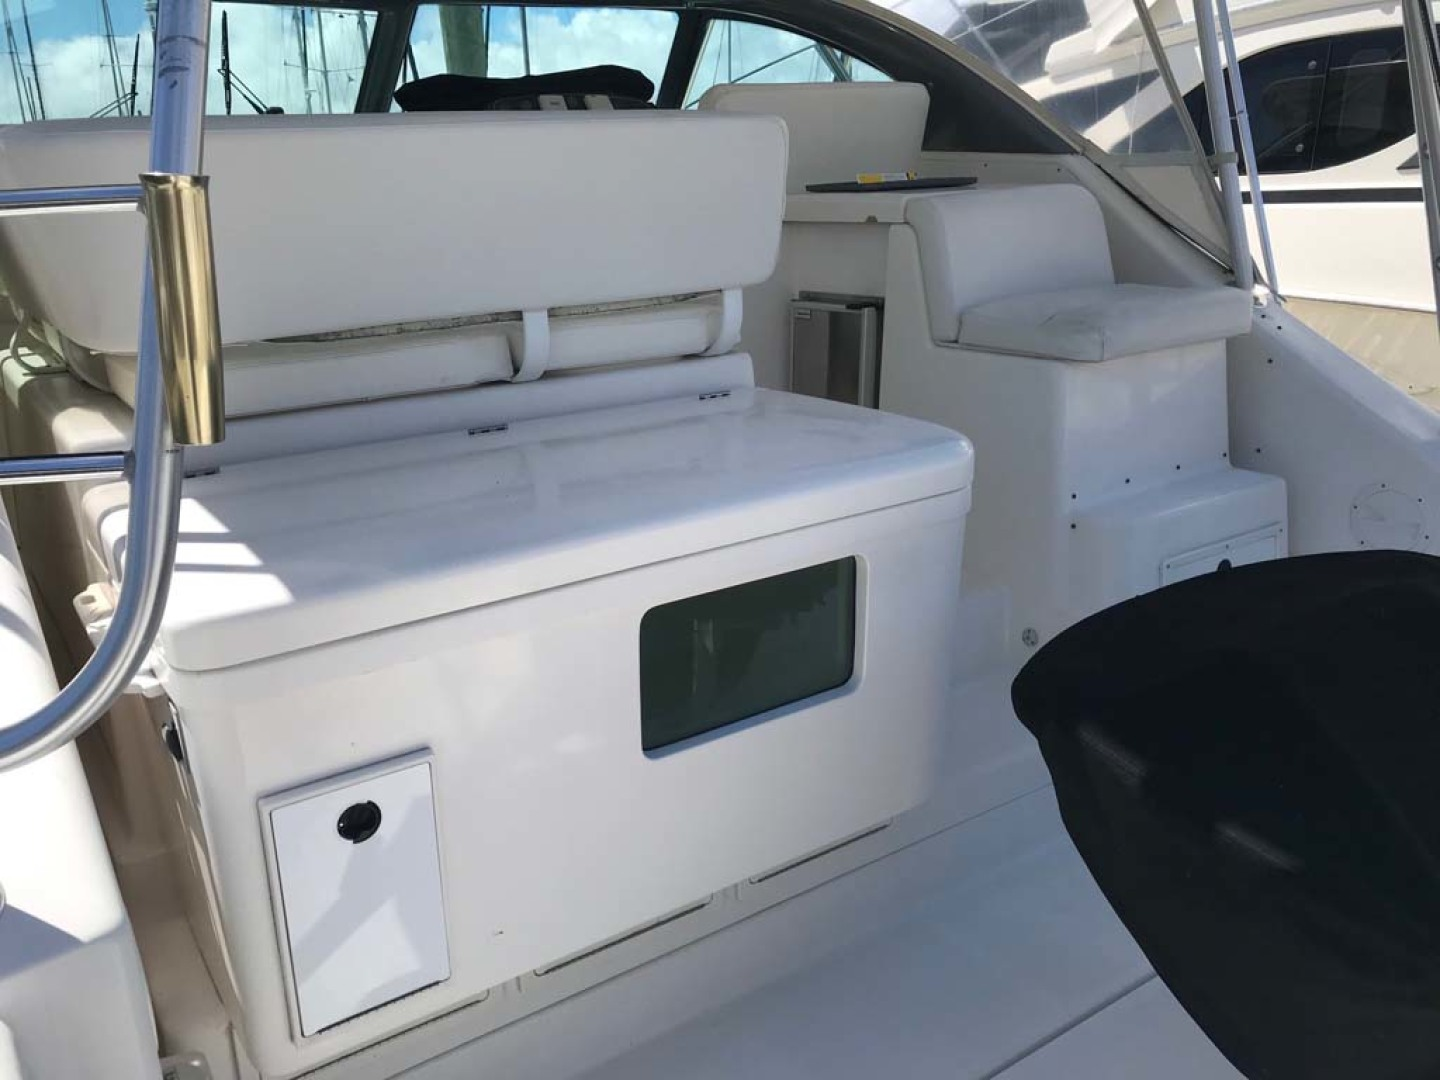 Pursuit-Express 2003-N Pursuit St. Augustine-Florida-United States-Tackle center w/ large livewell, sink, and storage compartment-1221517 | Thumbnail